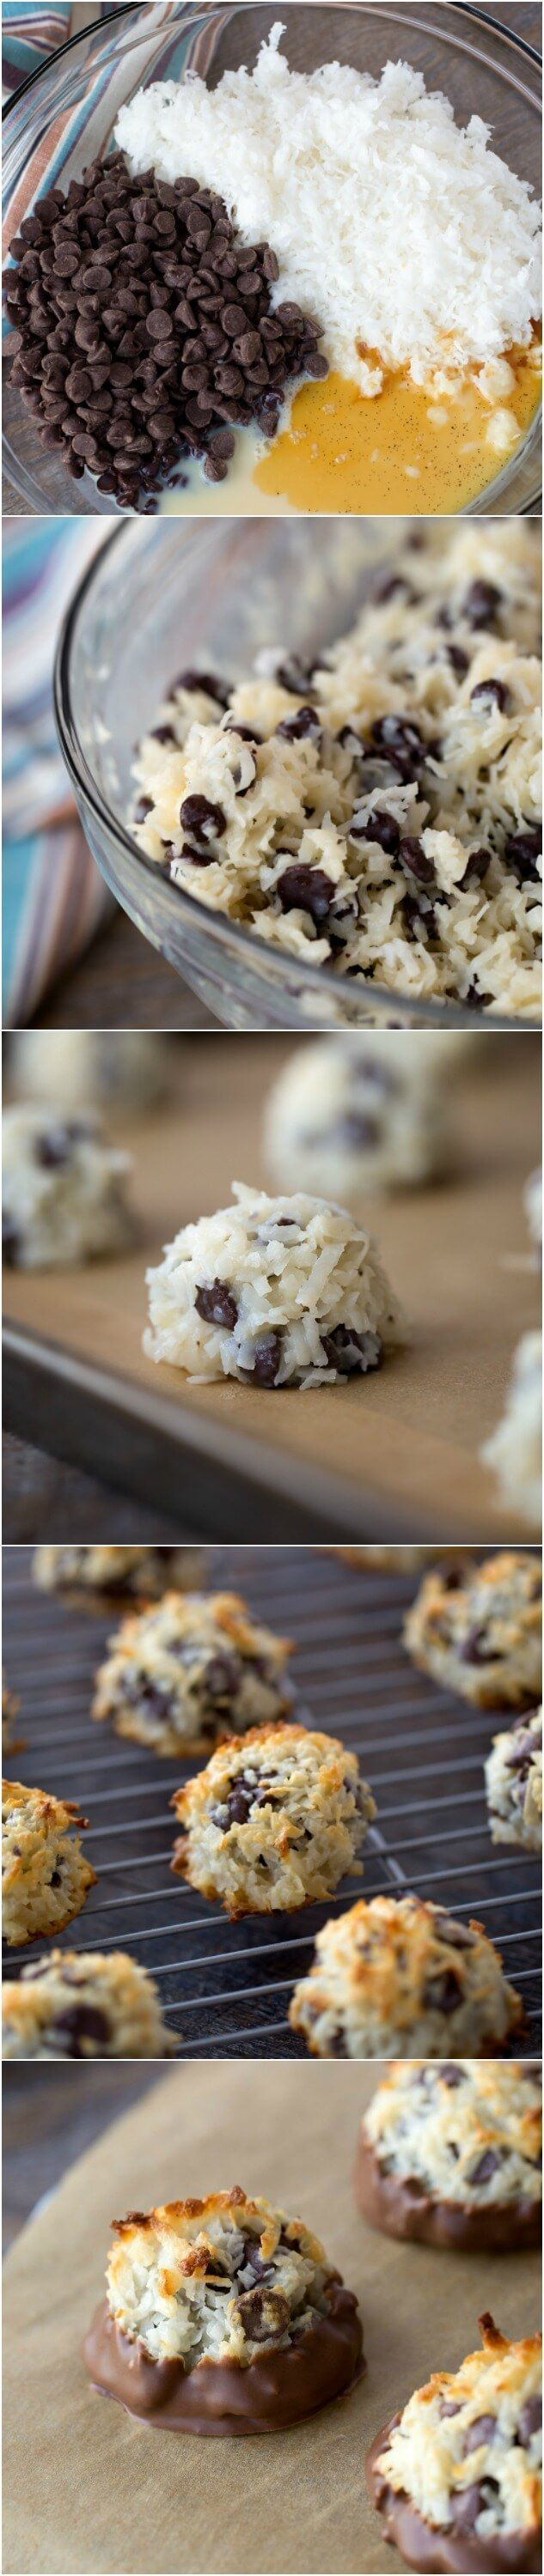 Coconut Chocolate Chip Macaroon Recipe - Perfect Passover or ANYTIME dessert recipe